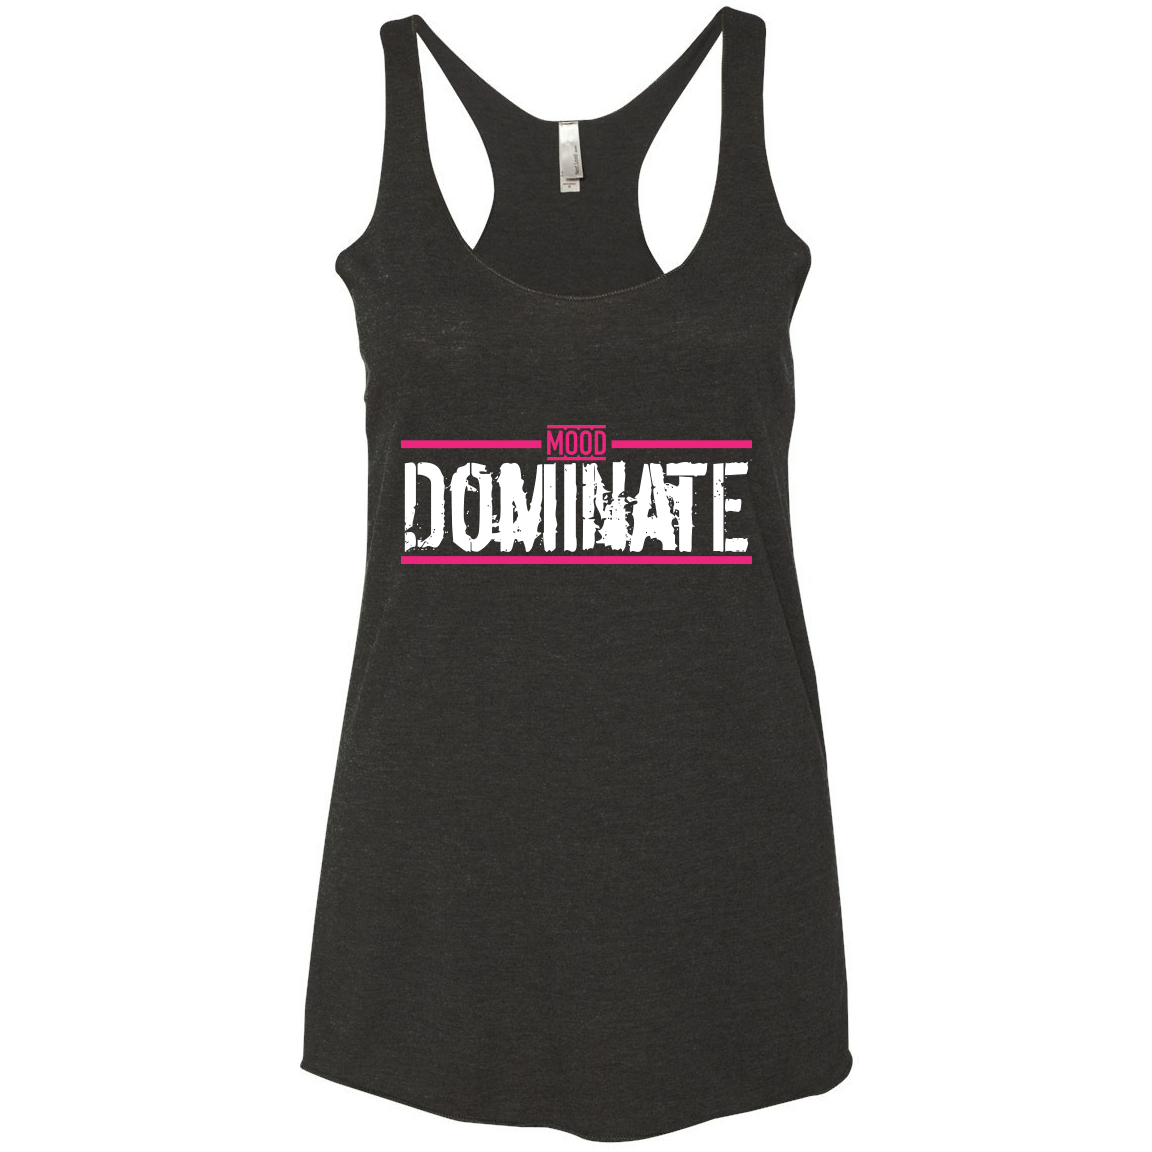 MOOD - Dominate - Racerback Tank